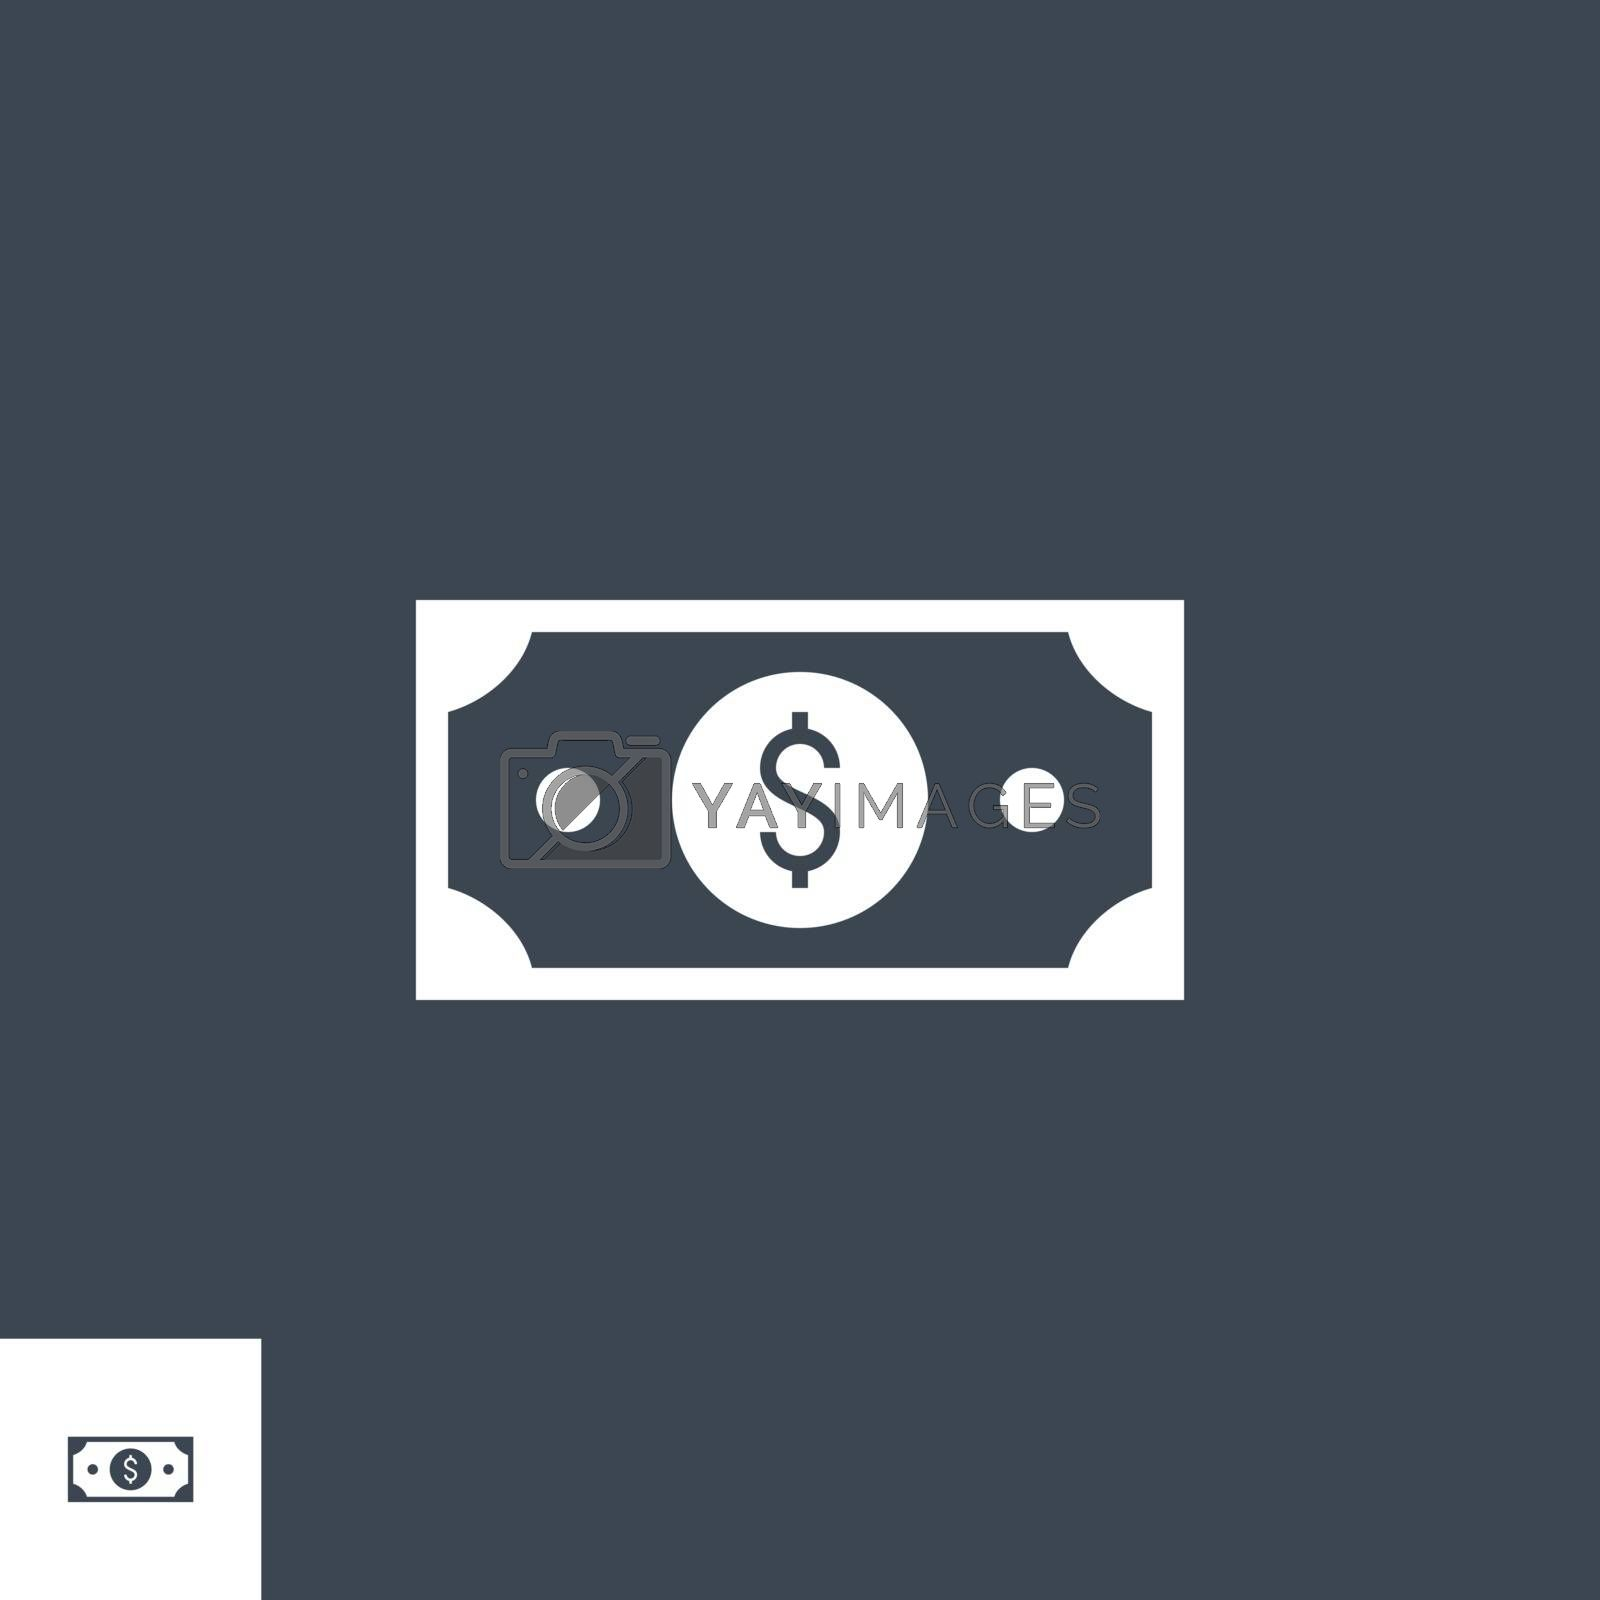 Dollar related vector glyph icon. Isolated on black background. Vector illustration.